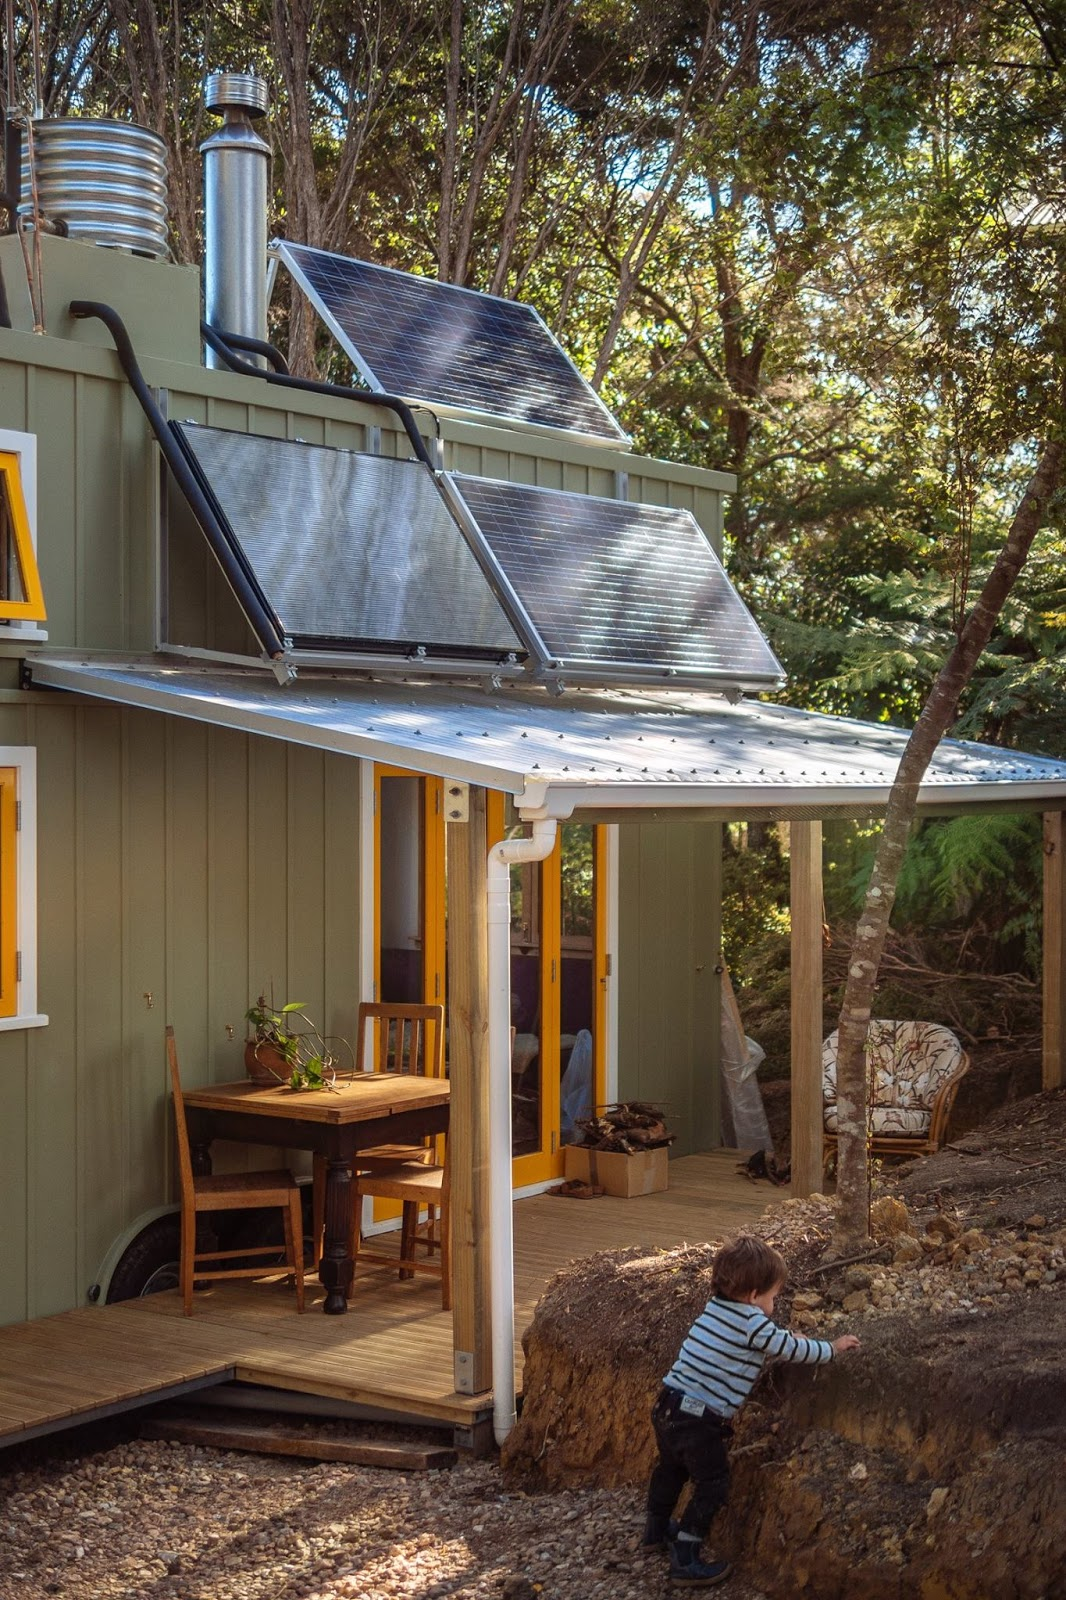 NZ Tiny House that is Build like a Boat Wee Make Change